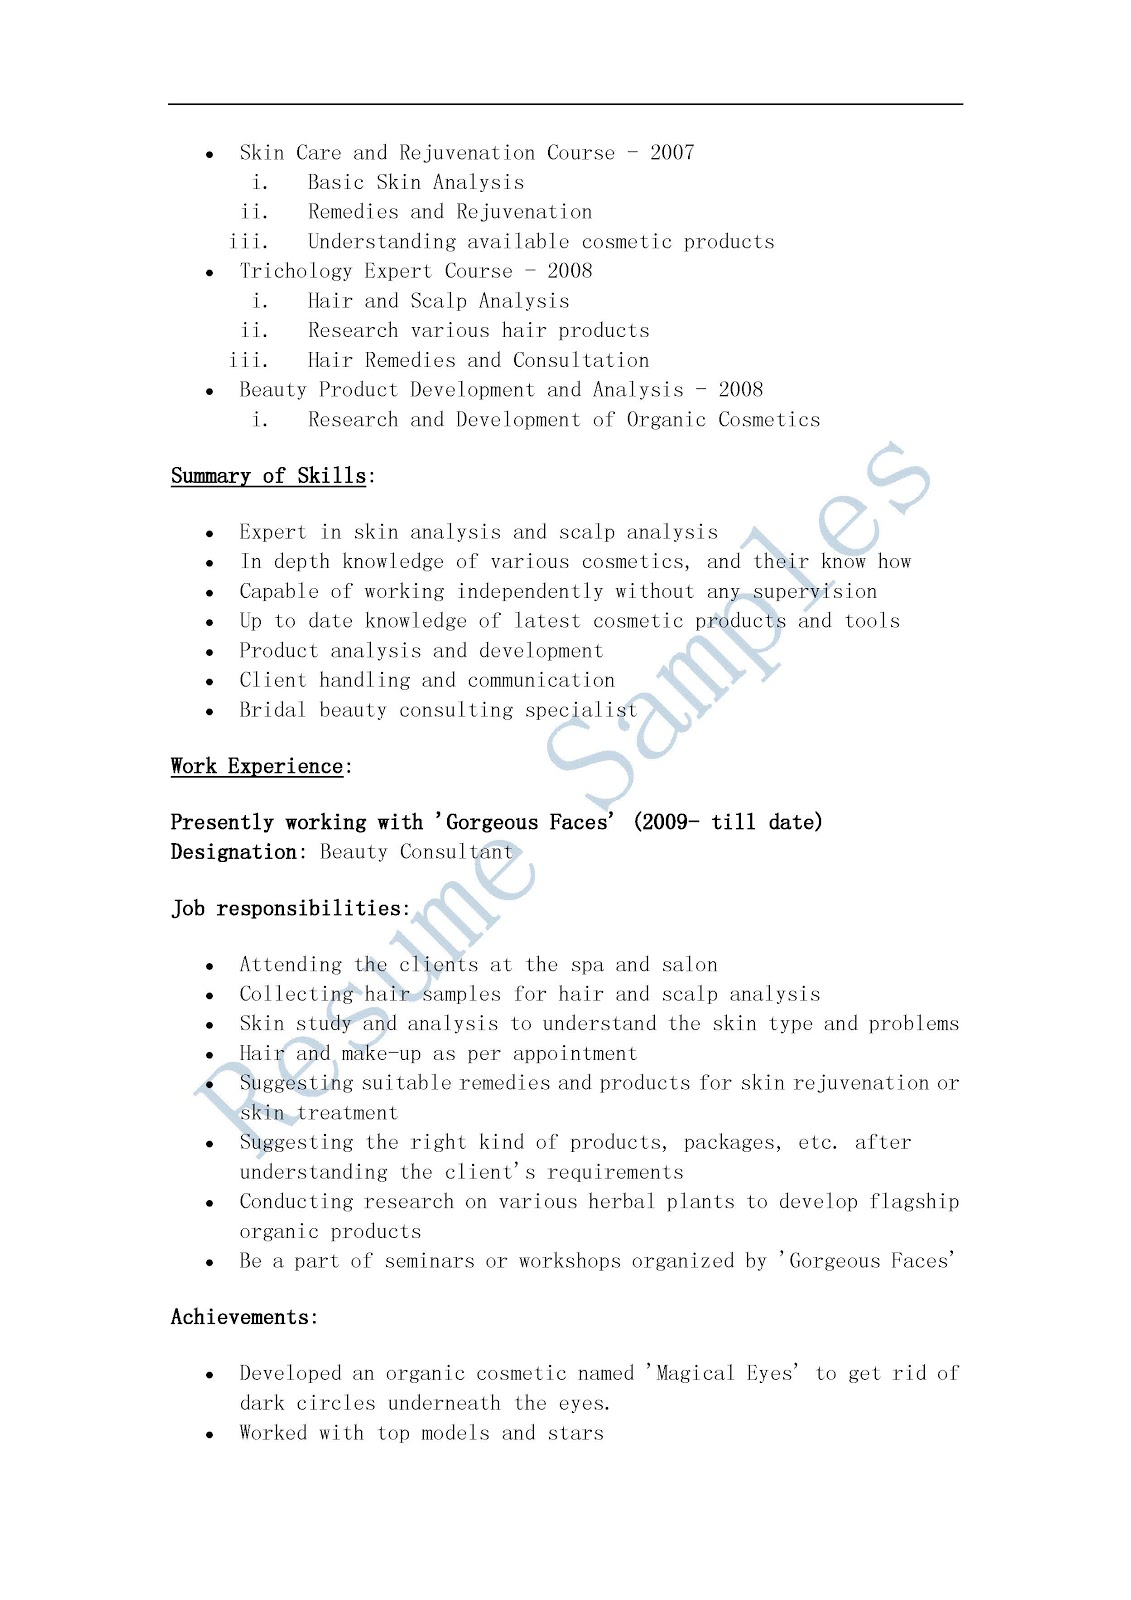 Sap Bw Consultant Cover Letter | Health Information Management ...